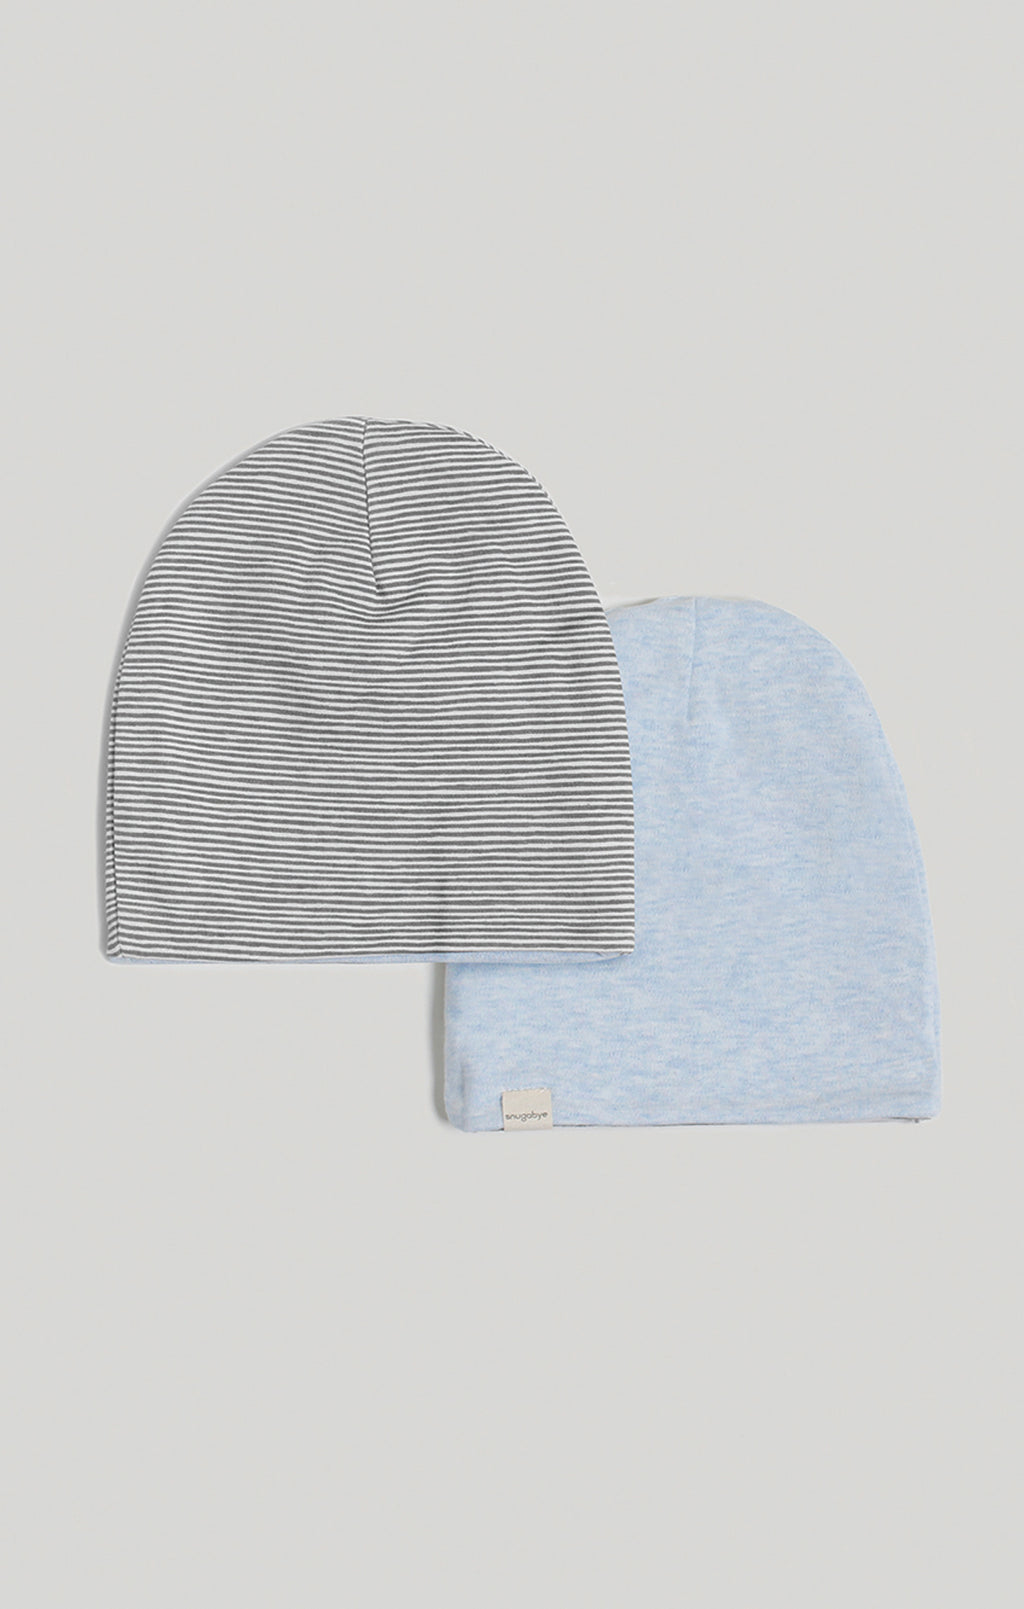 Beanie - Reversible Stripes & Blue Slouchy Beanie | Baby Hat